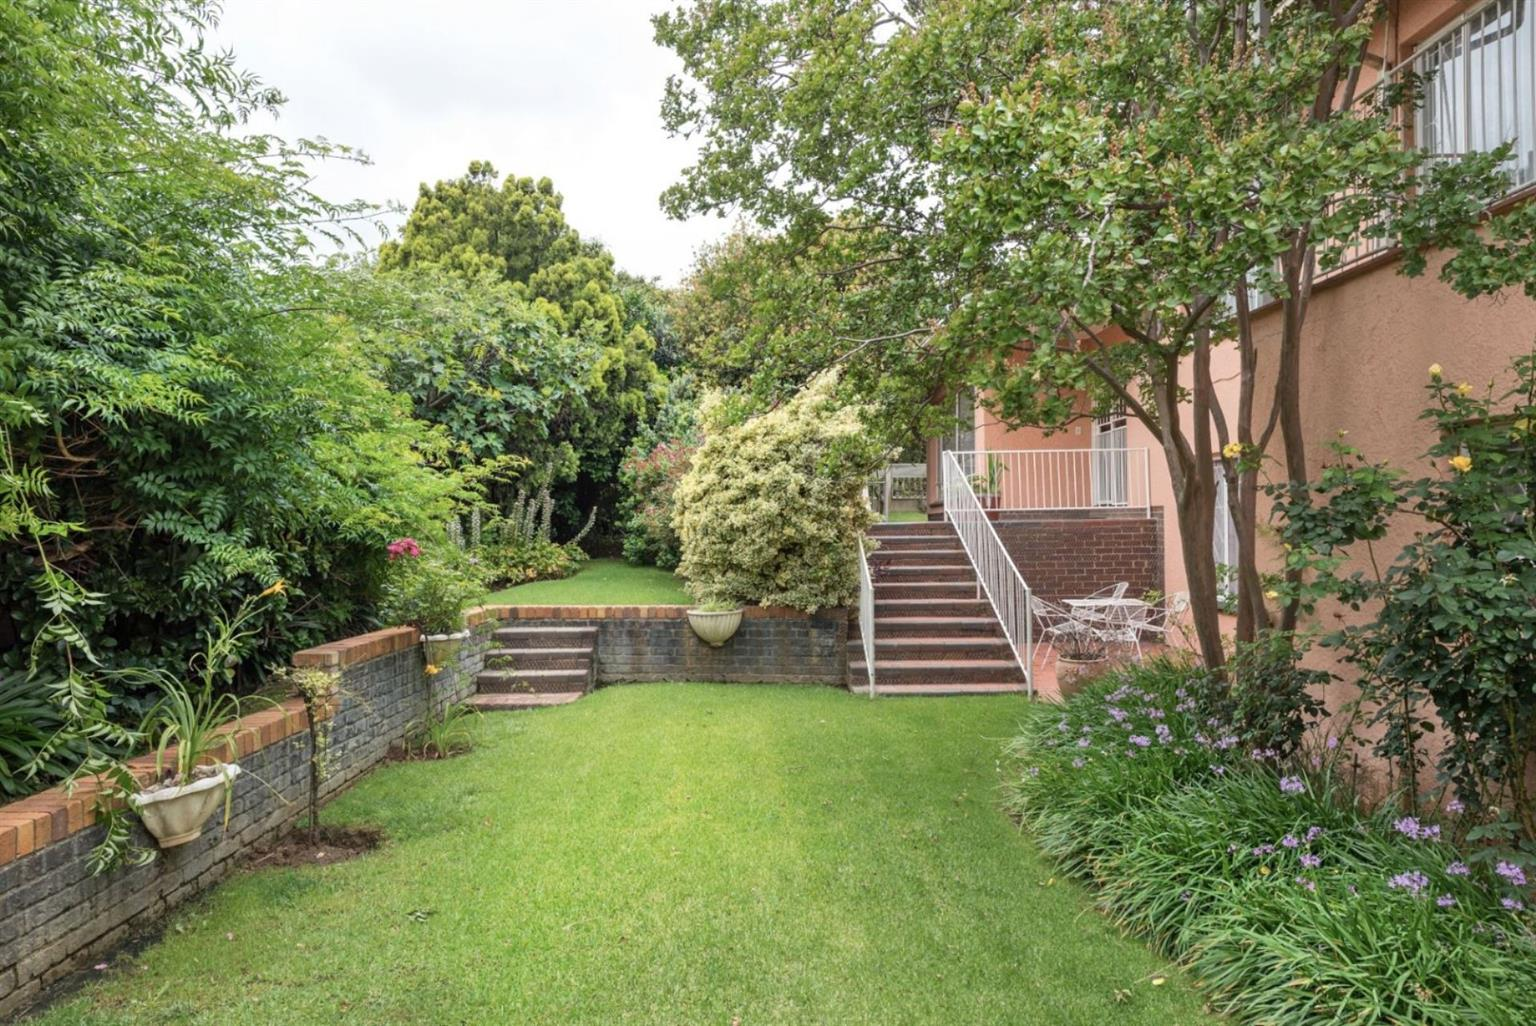 House For Sale in EASTLEIGH RIDGE